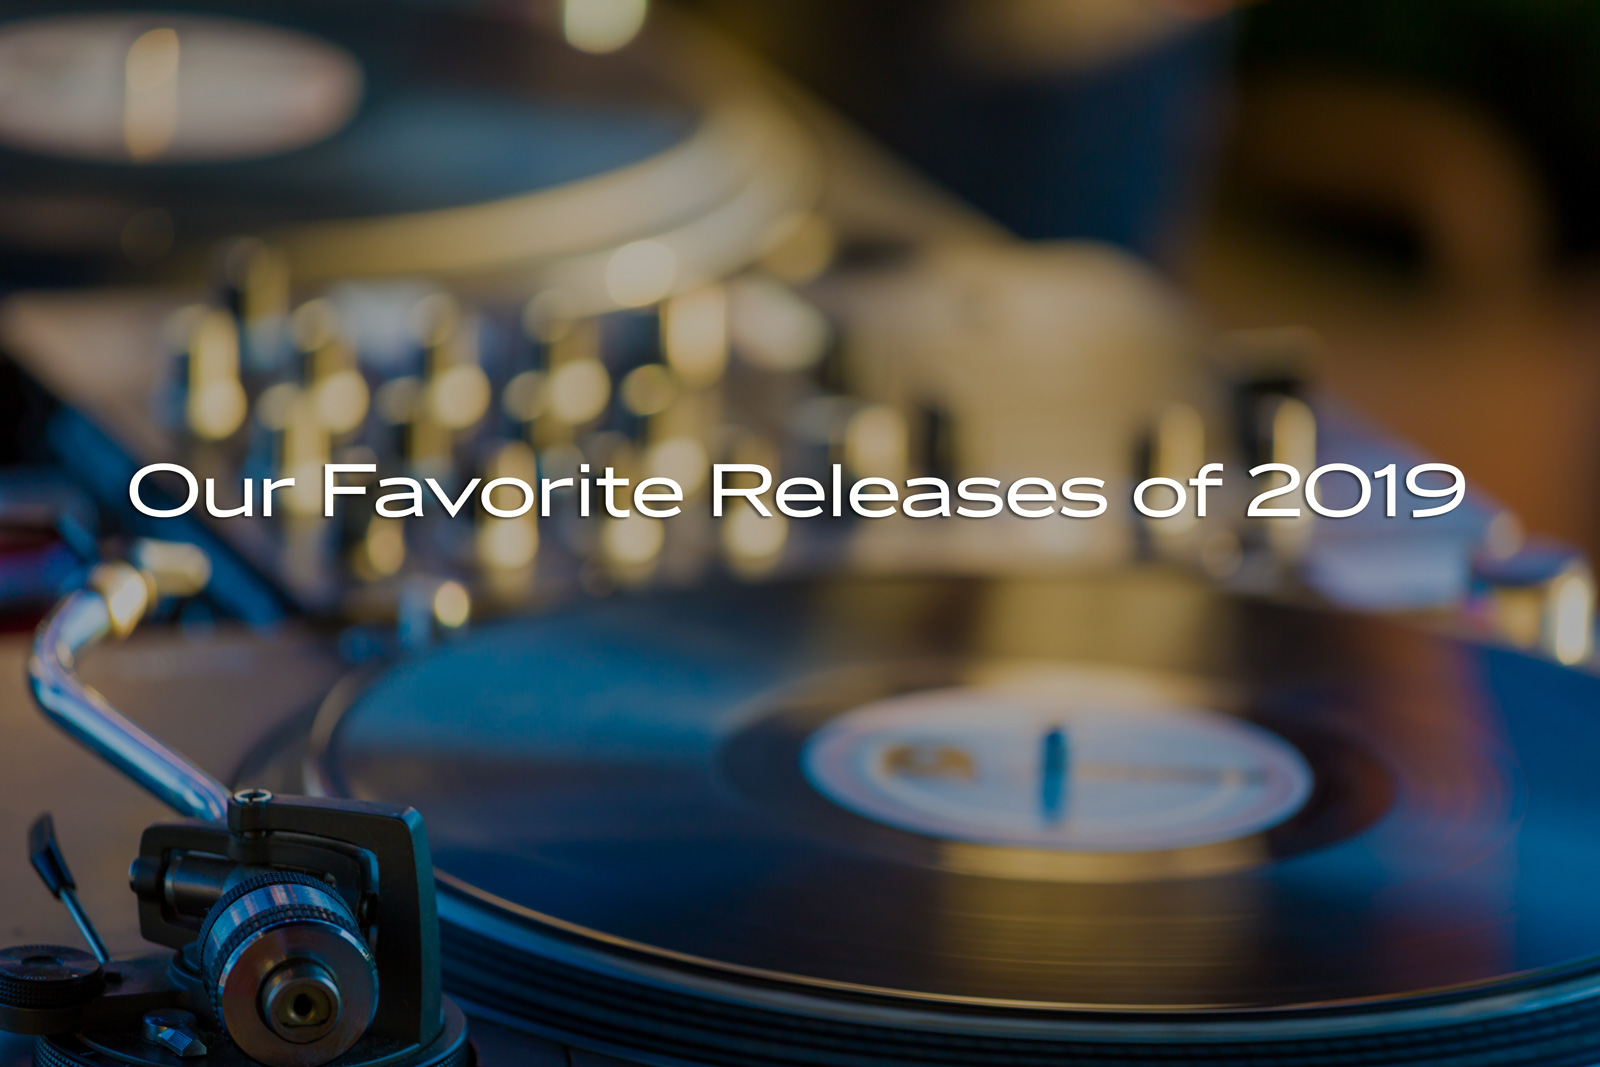 Our Favorite Releases of 2019